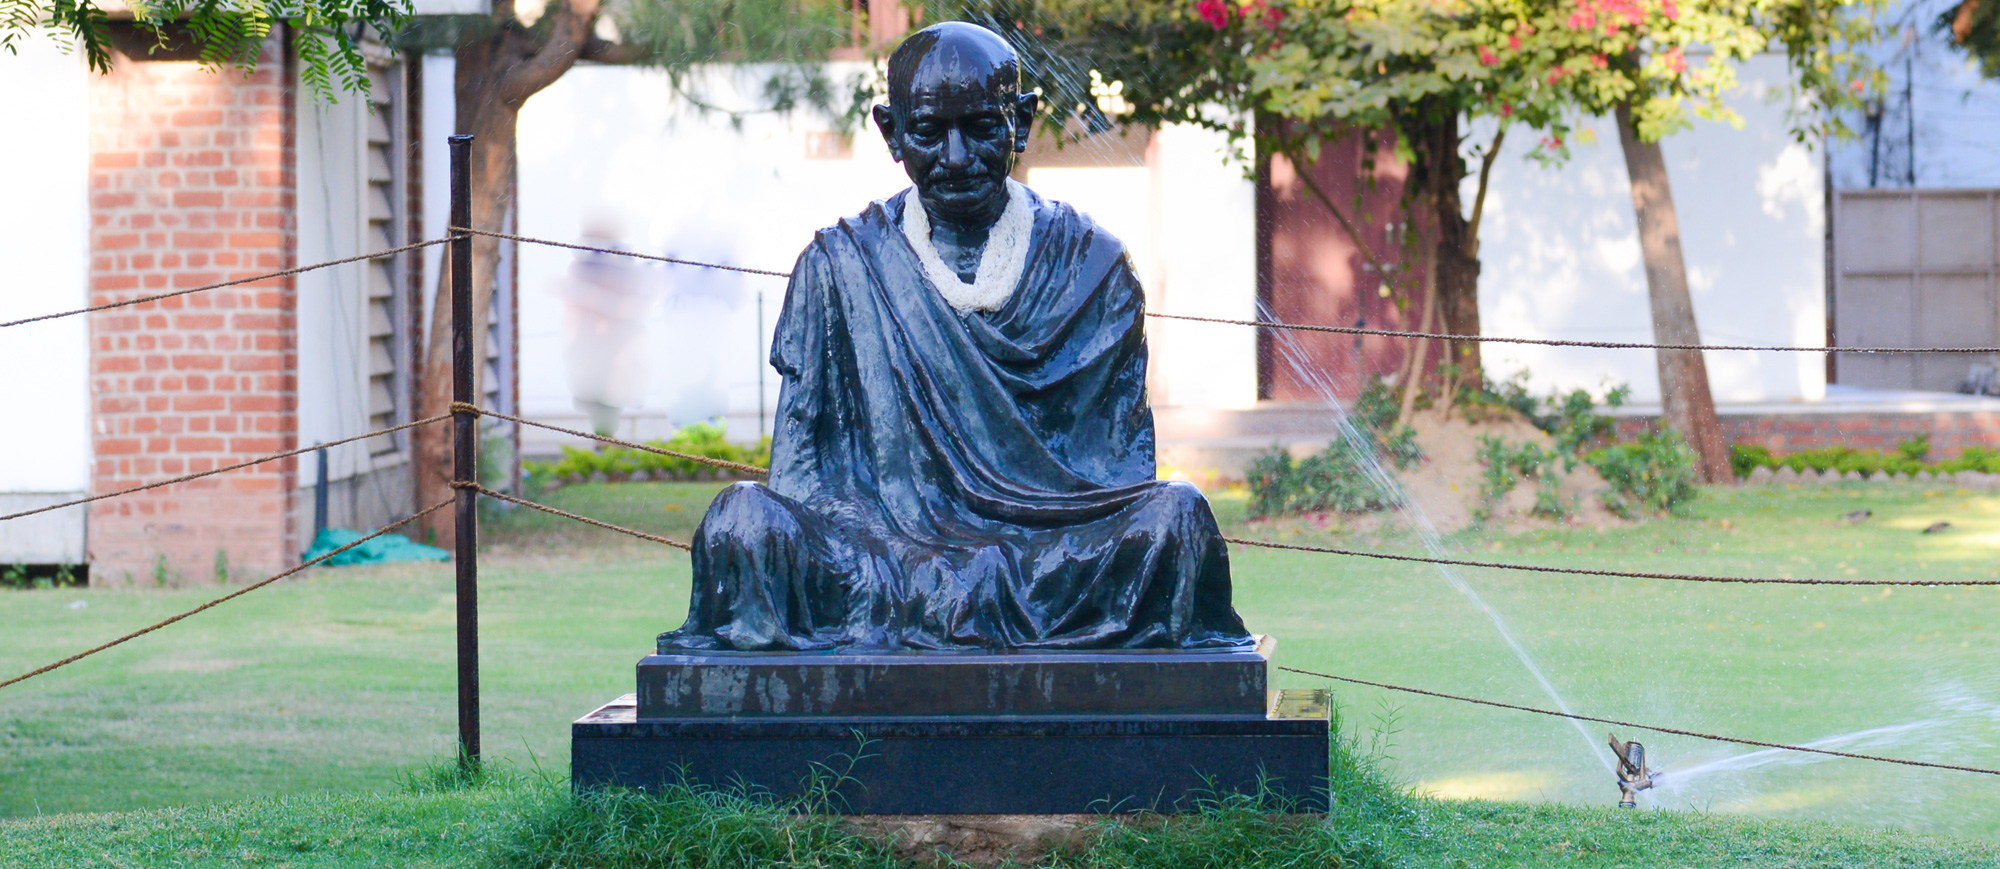 Mahatma Gandhi and the art of disobedience